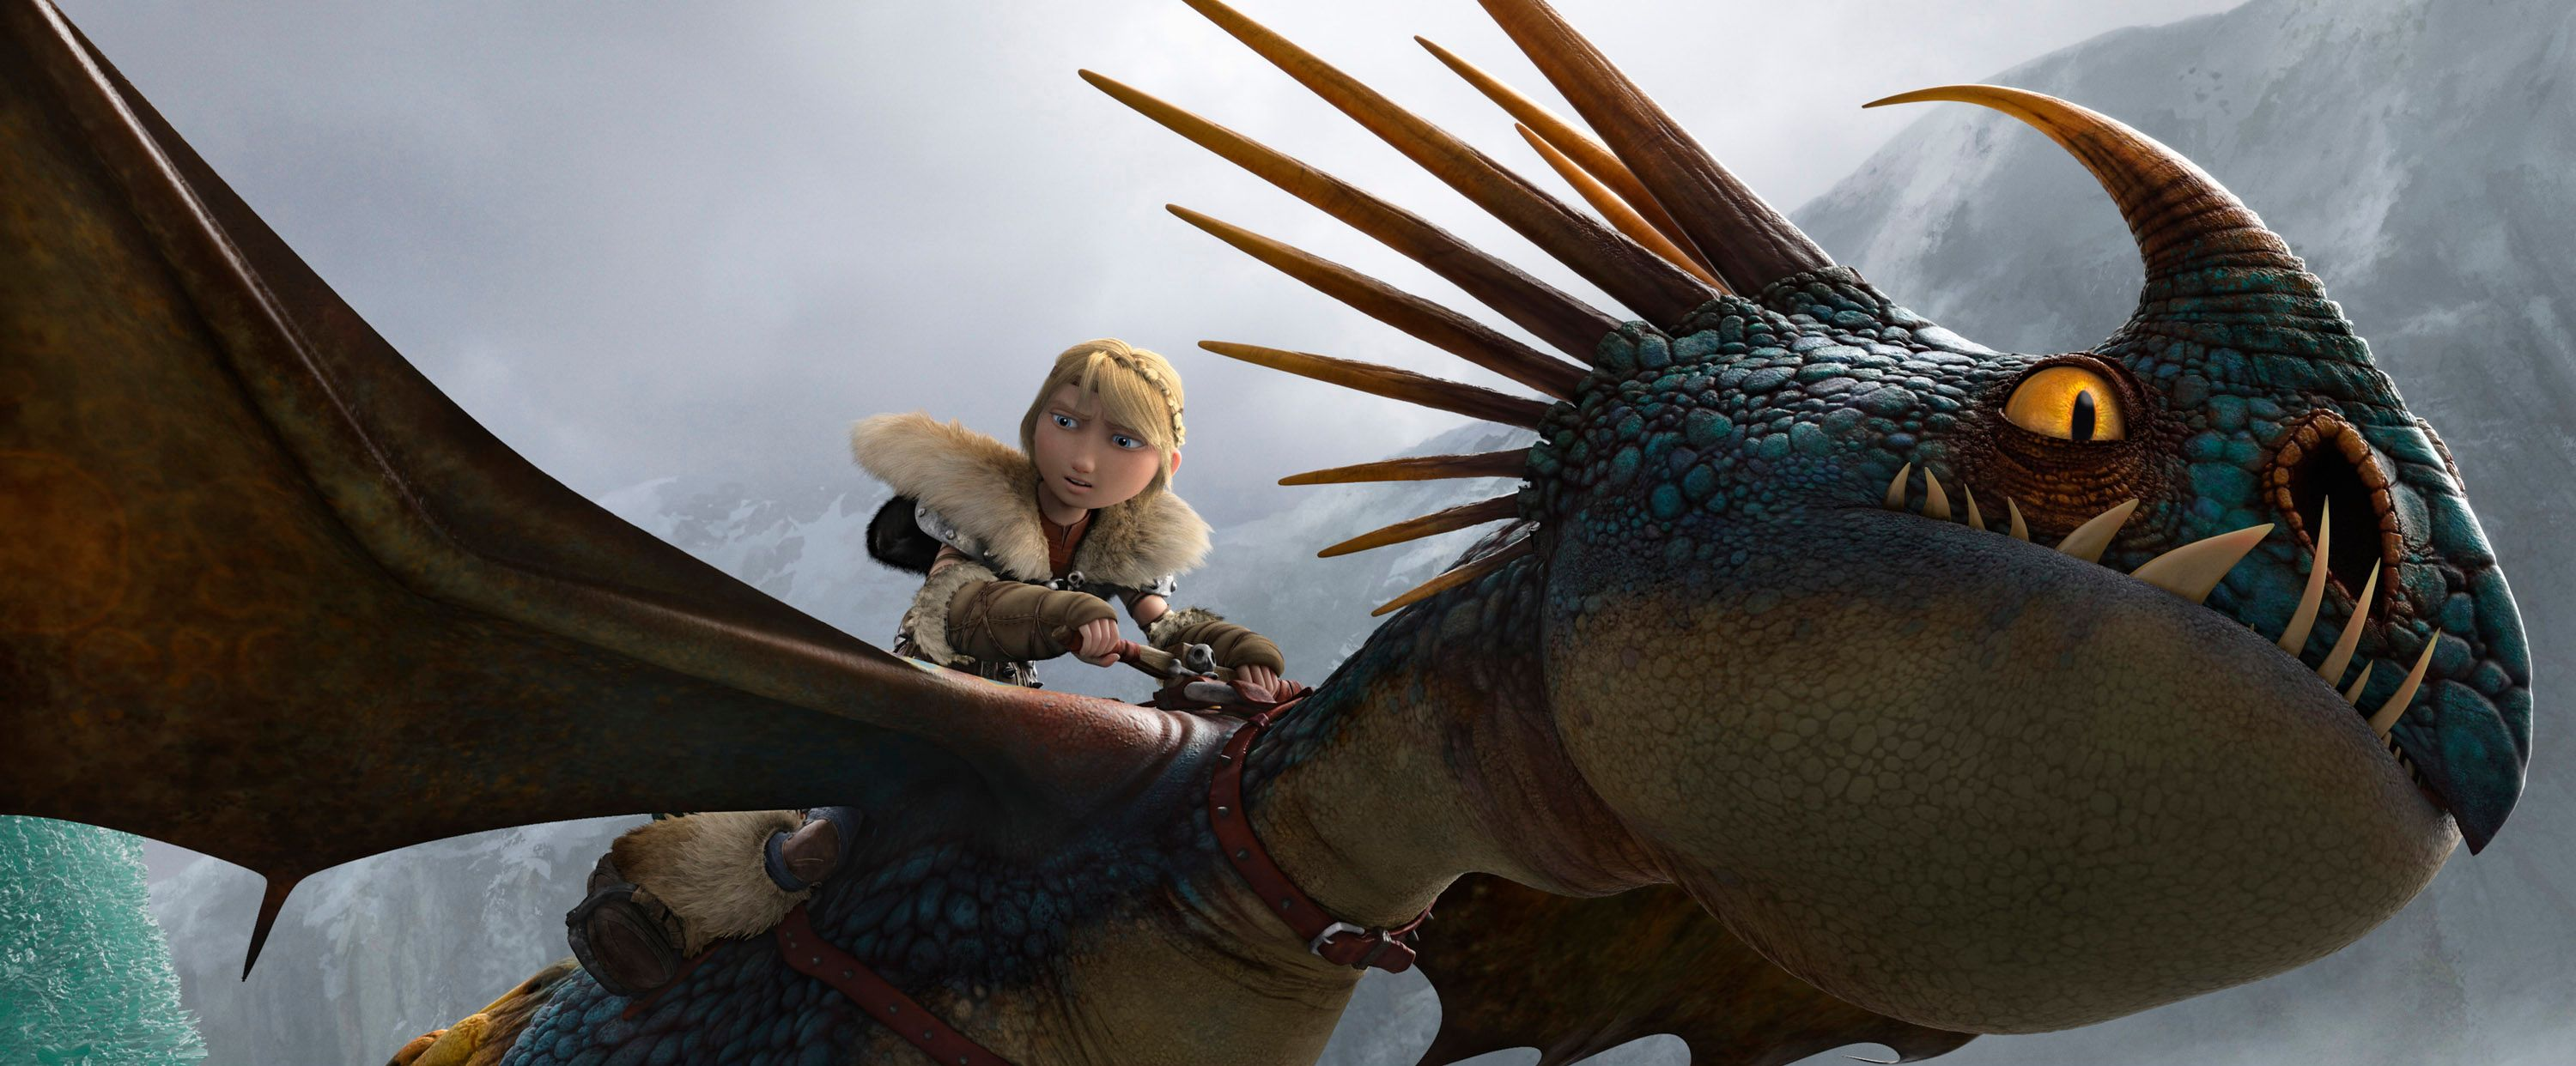 How to Train Your Dragon 2 Interview: Composer John Powell ... - photo#36